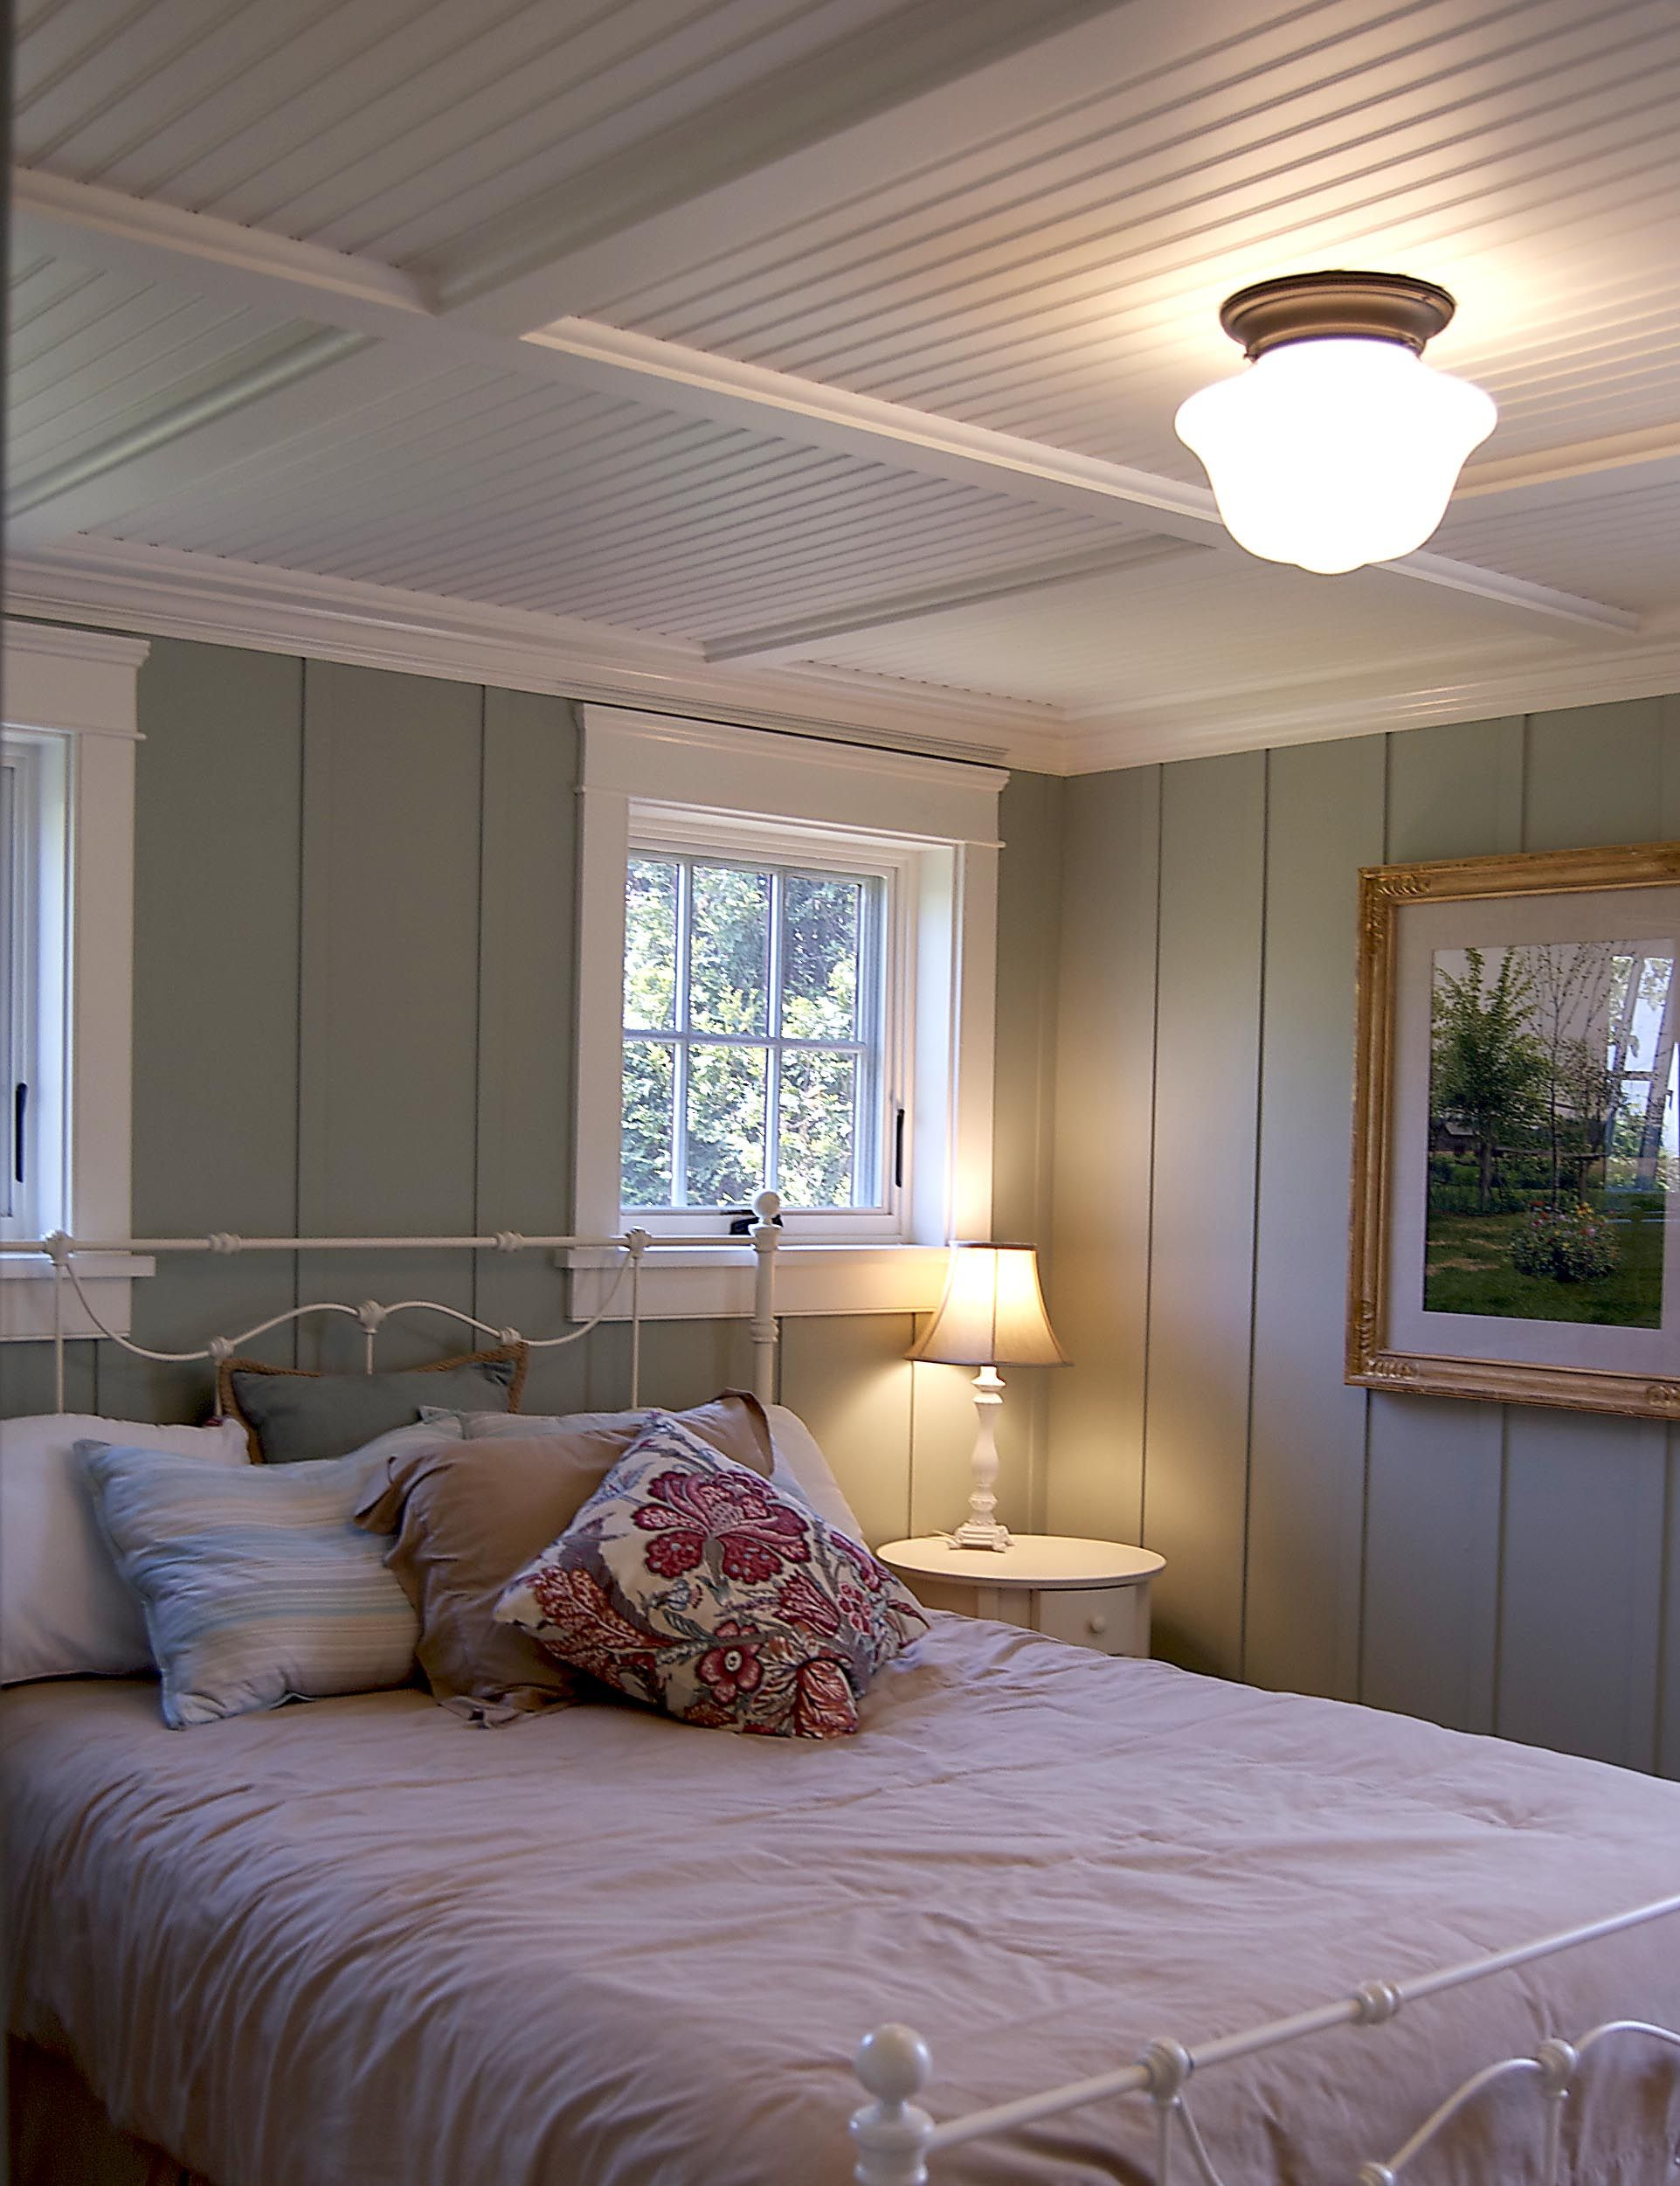 Gulfshoredesign cottage bedroom with floor to ceiling painted gulfshoredesign cottage bedroom with floor to ceiling painted wood paneling dailygadgetfo Gallery